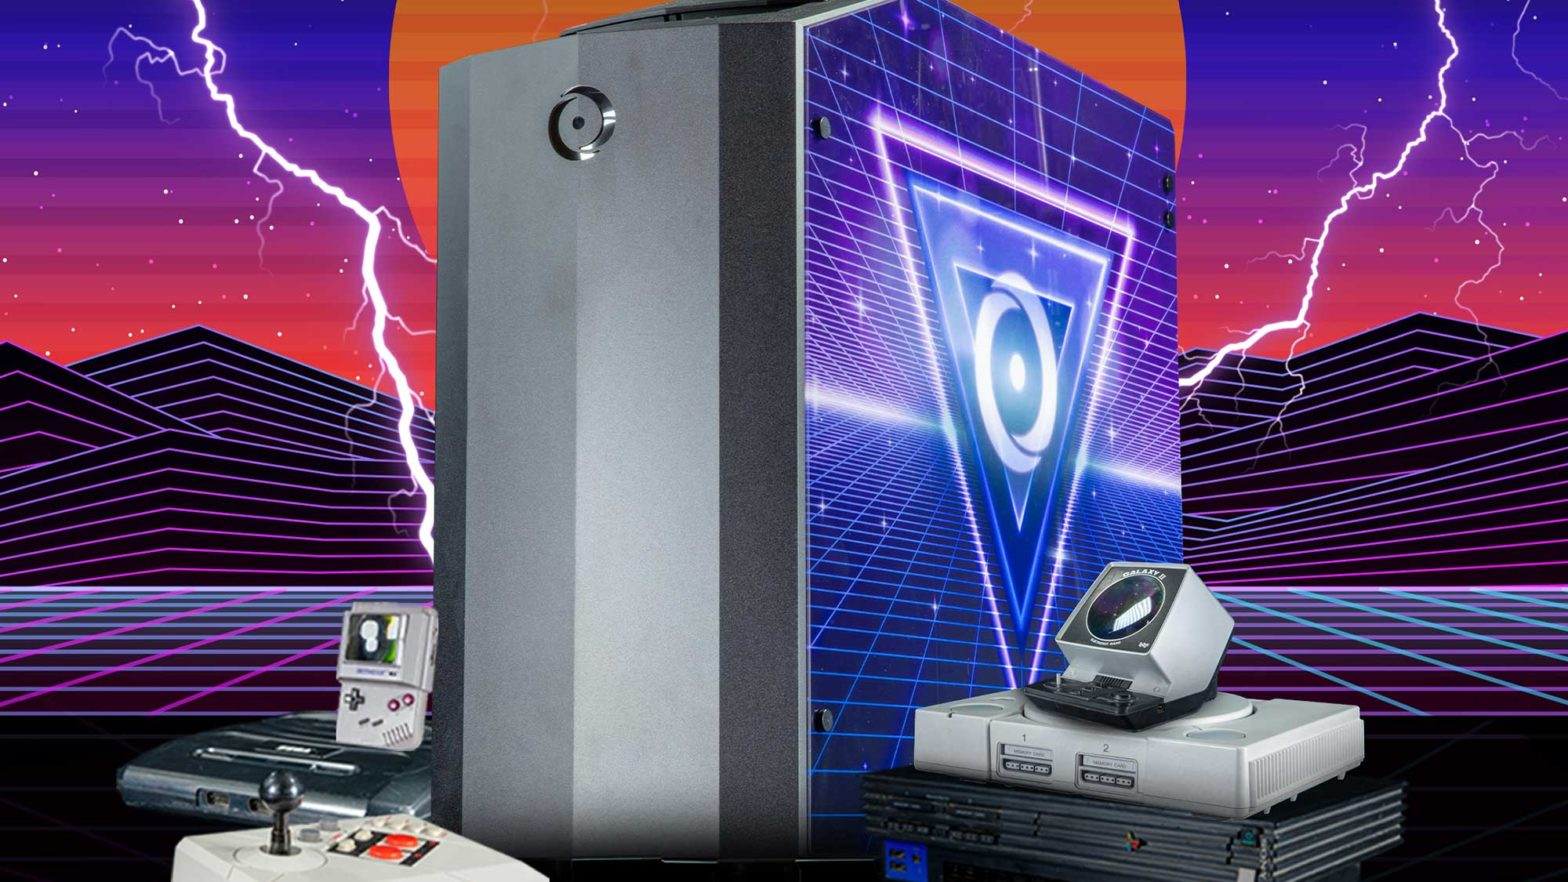 Origin PC Big O RetrO Edition Desktop